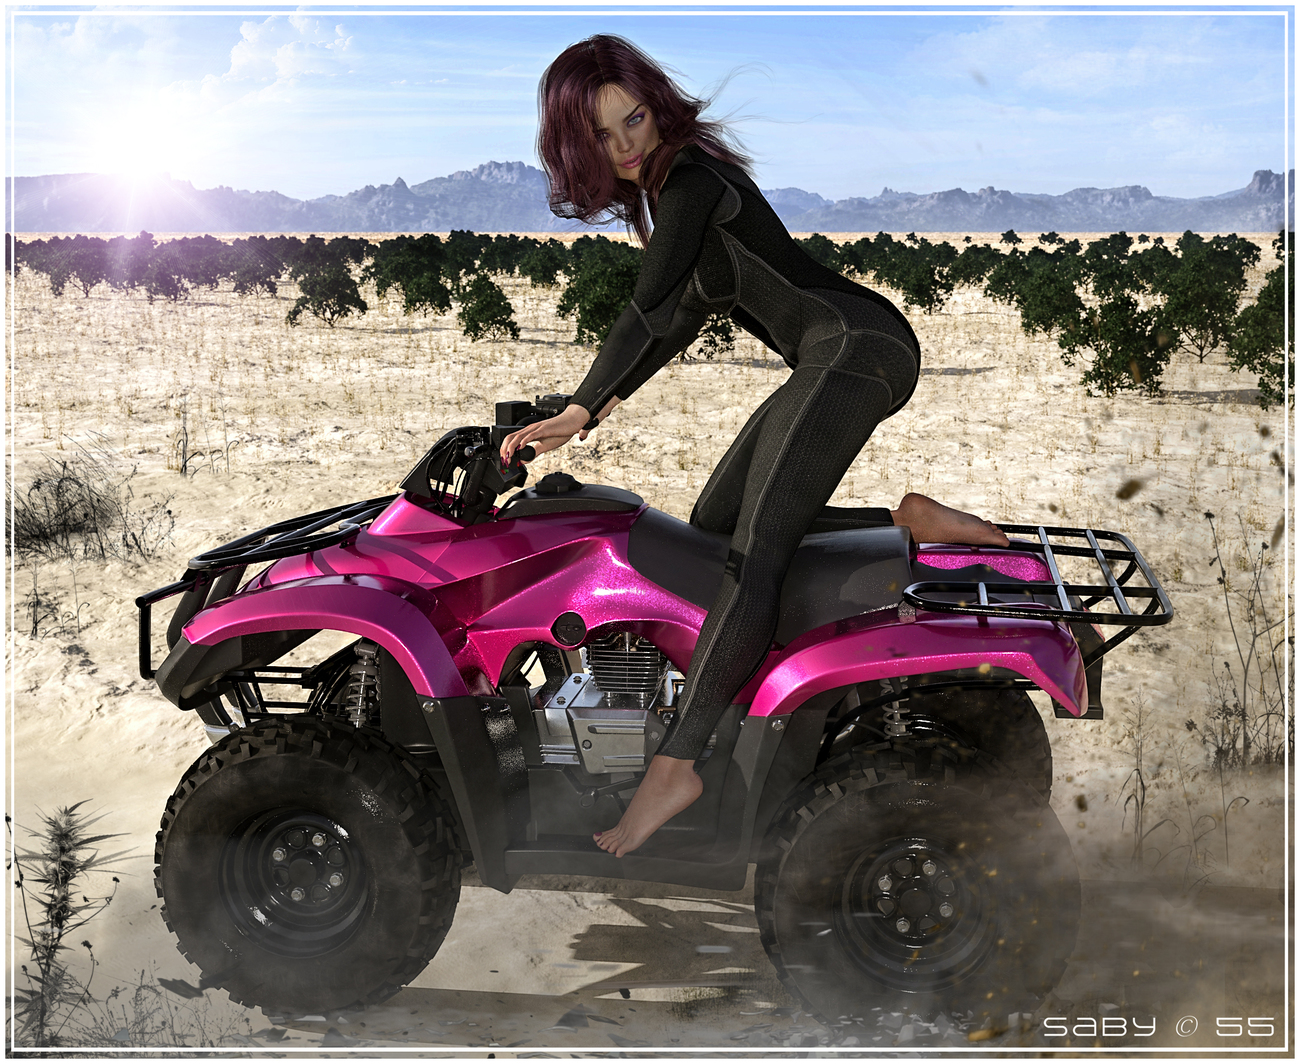 ATV Rides by Saby55